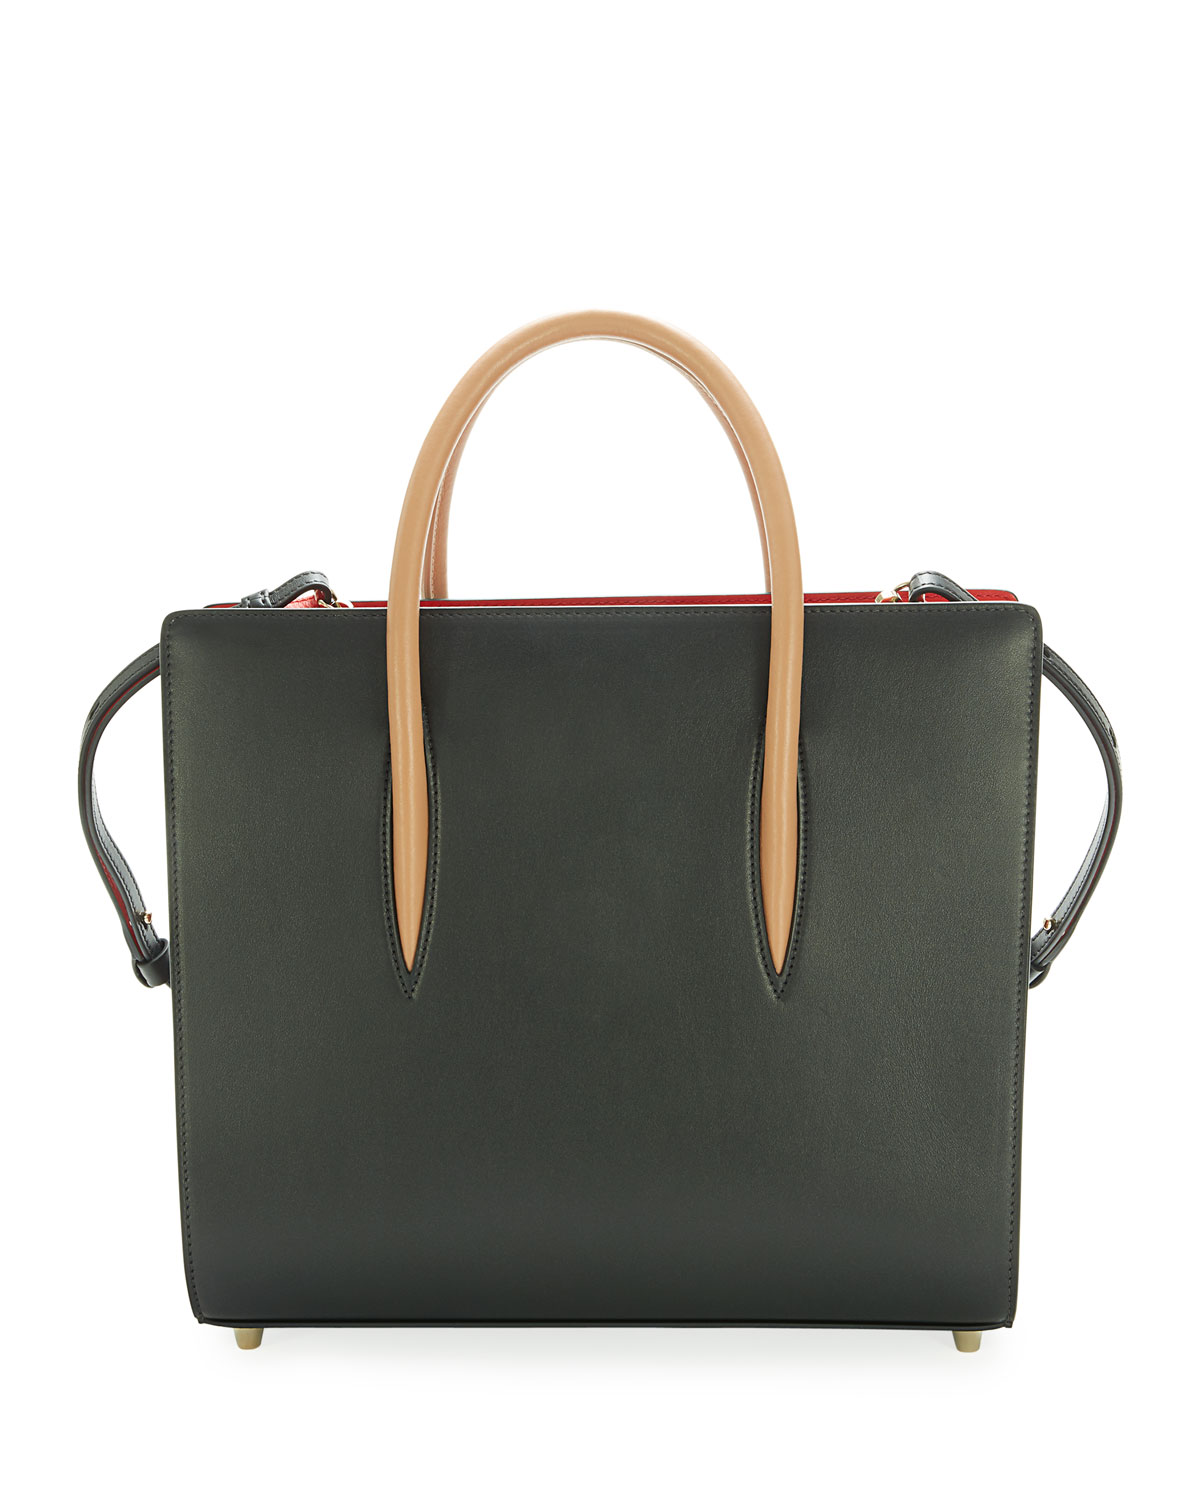 new arrivals lower price with new items Paloma Medium Spike Tote Bag